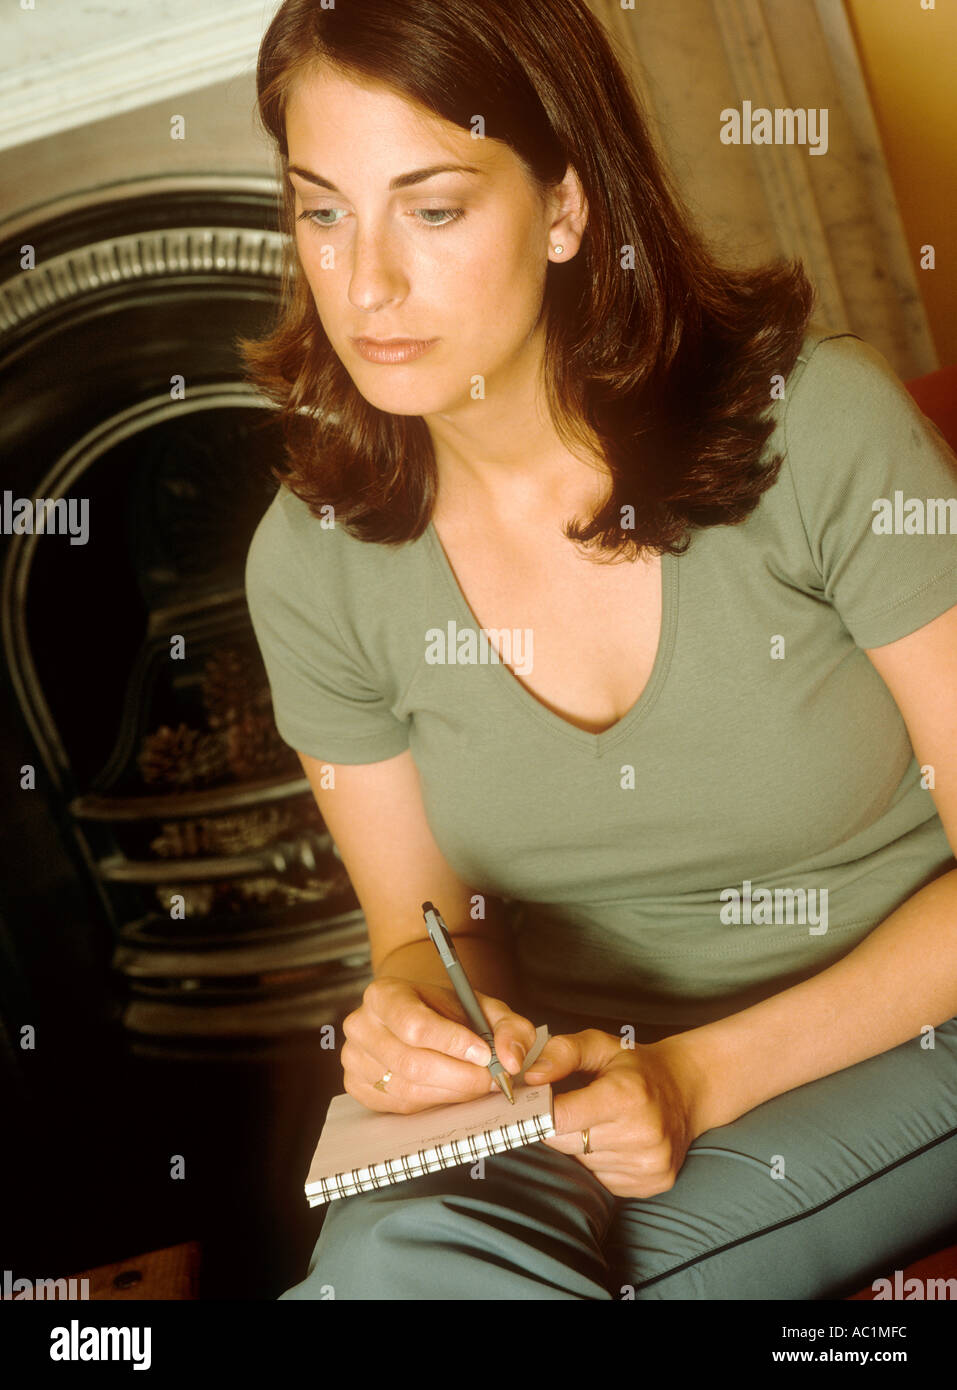 Woman sitting writing in a notebook Stock Photo